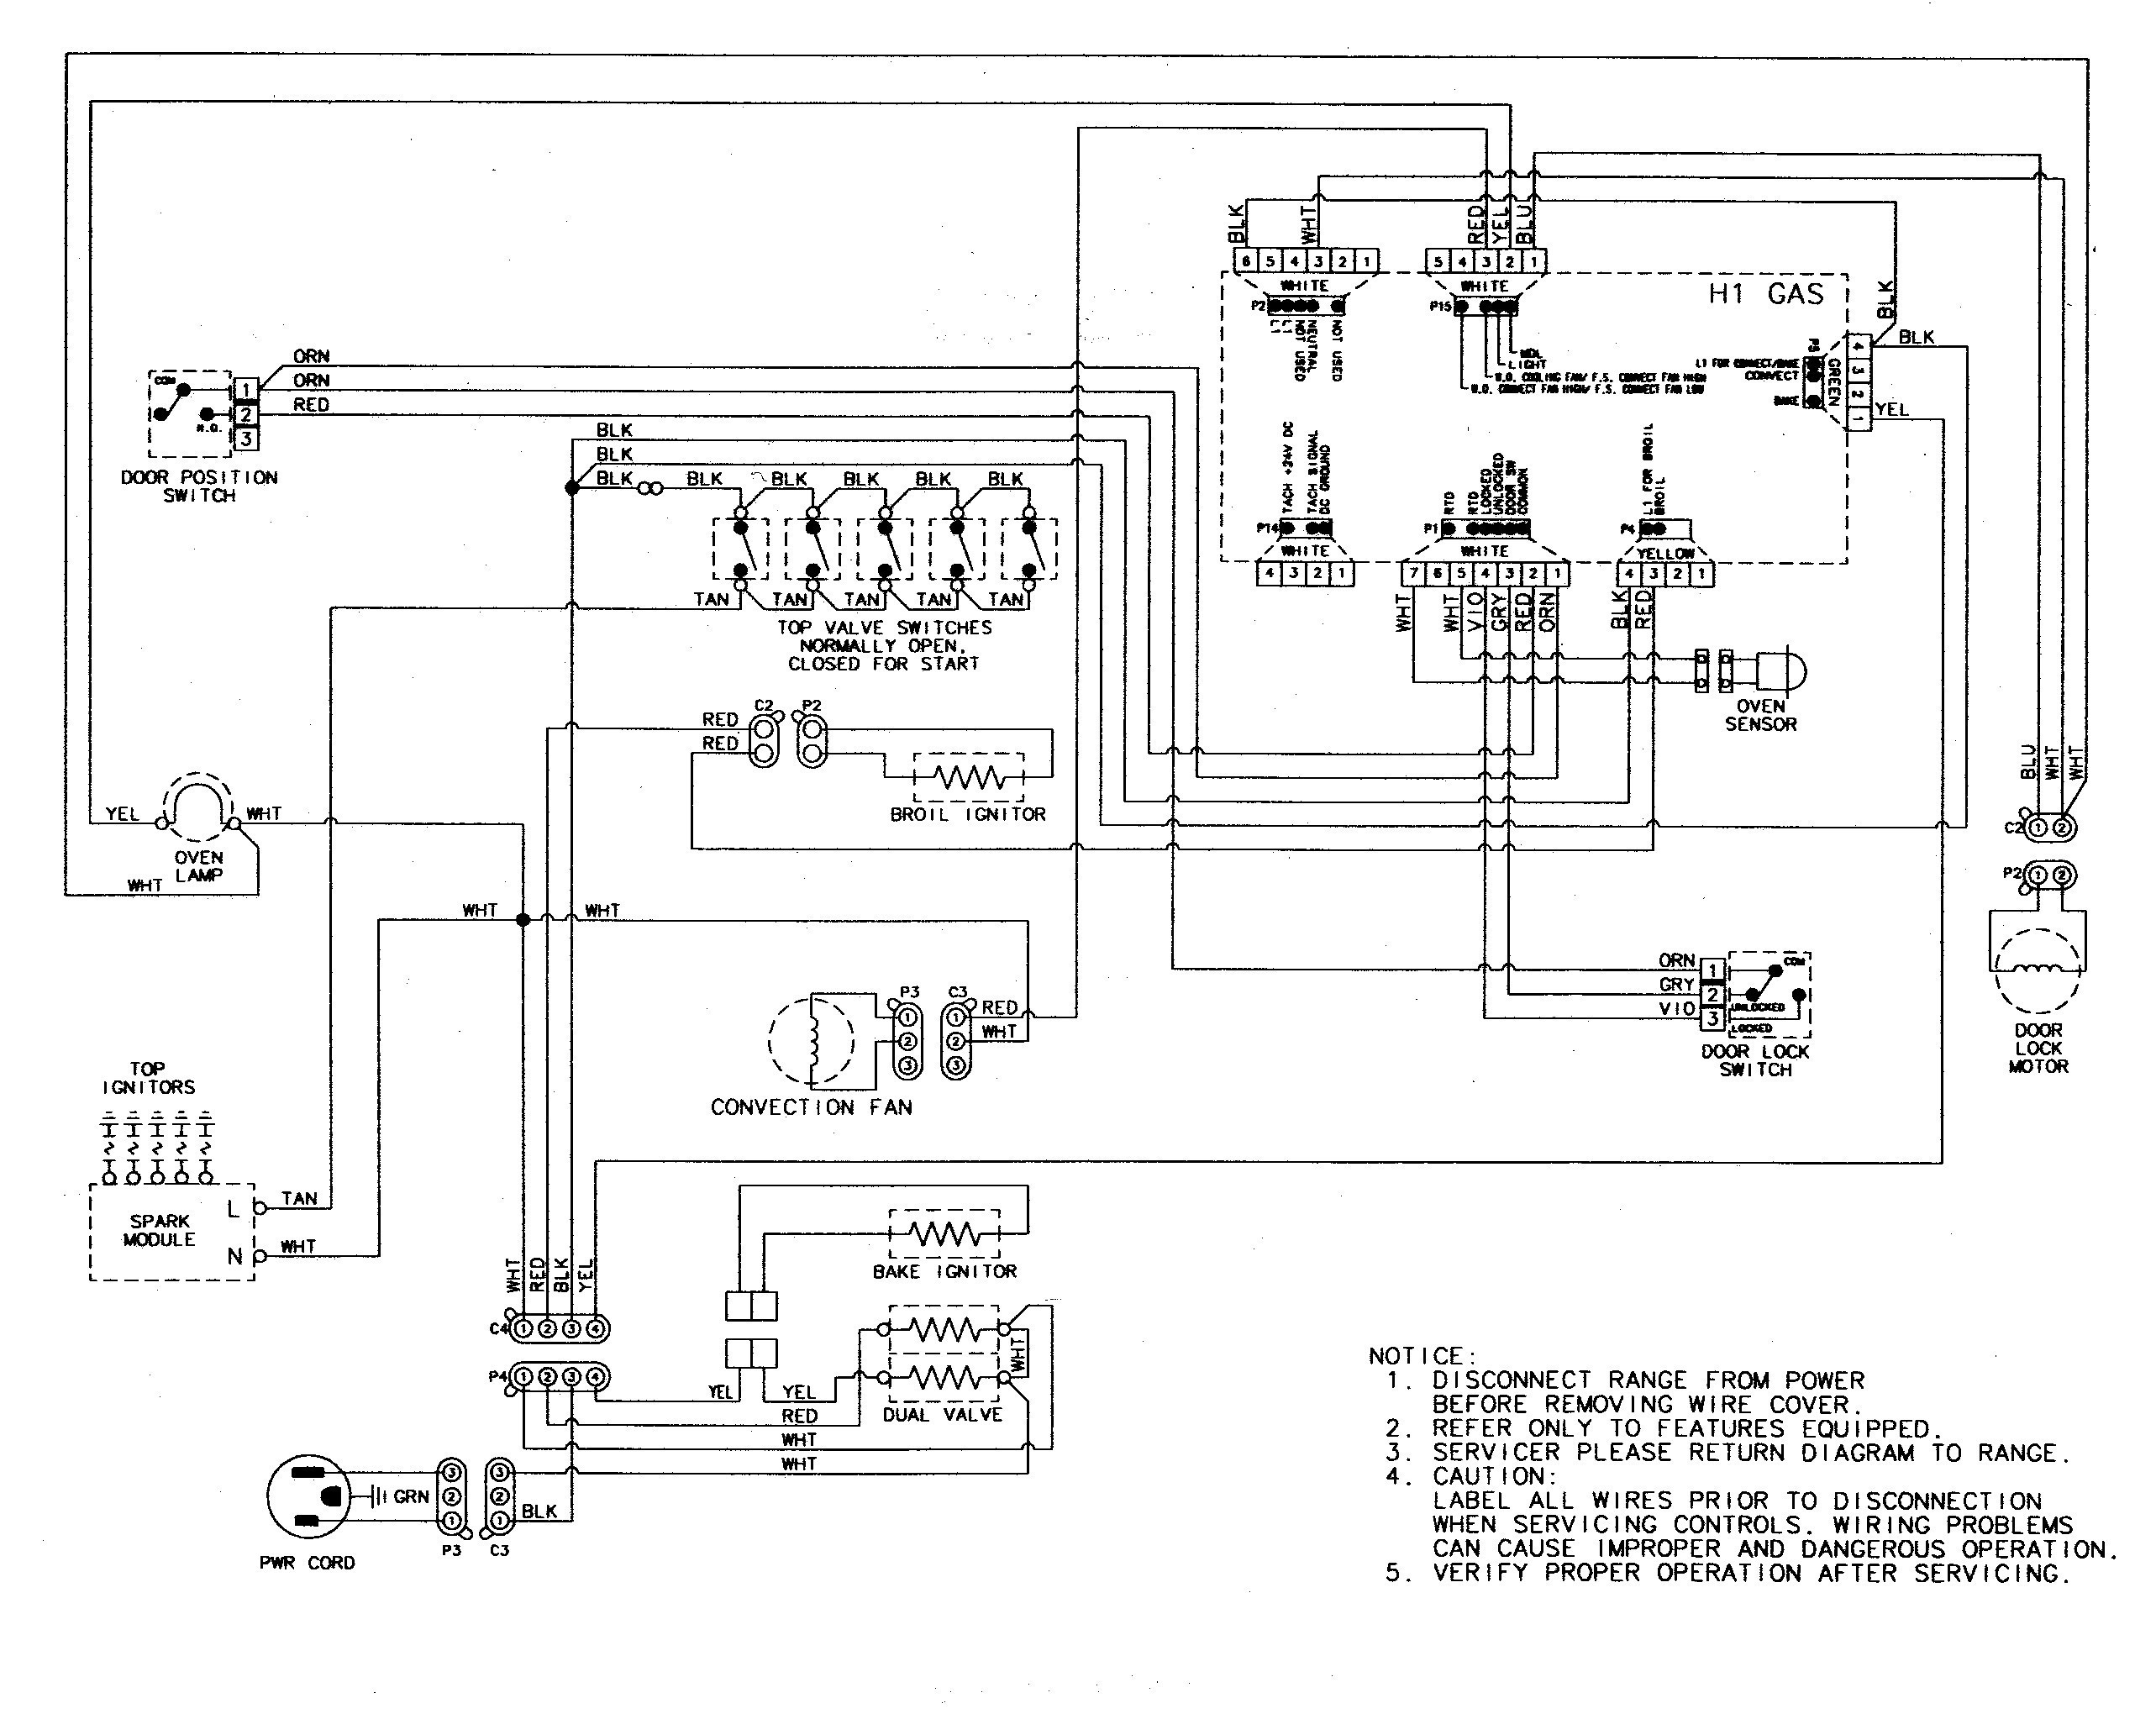 whirlpool gas dryer wiring diagram Download-Wiring Diagram Appliance Dryer Best Whirlpool Gas Dryer Wiring Diagram Collection 7-e